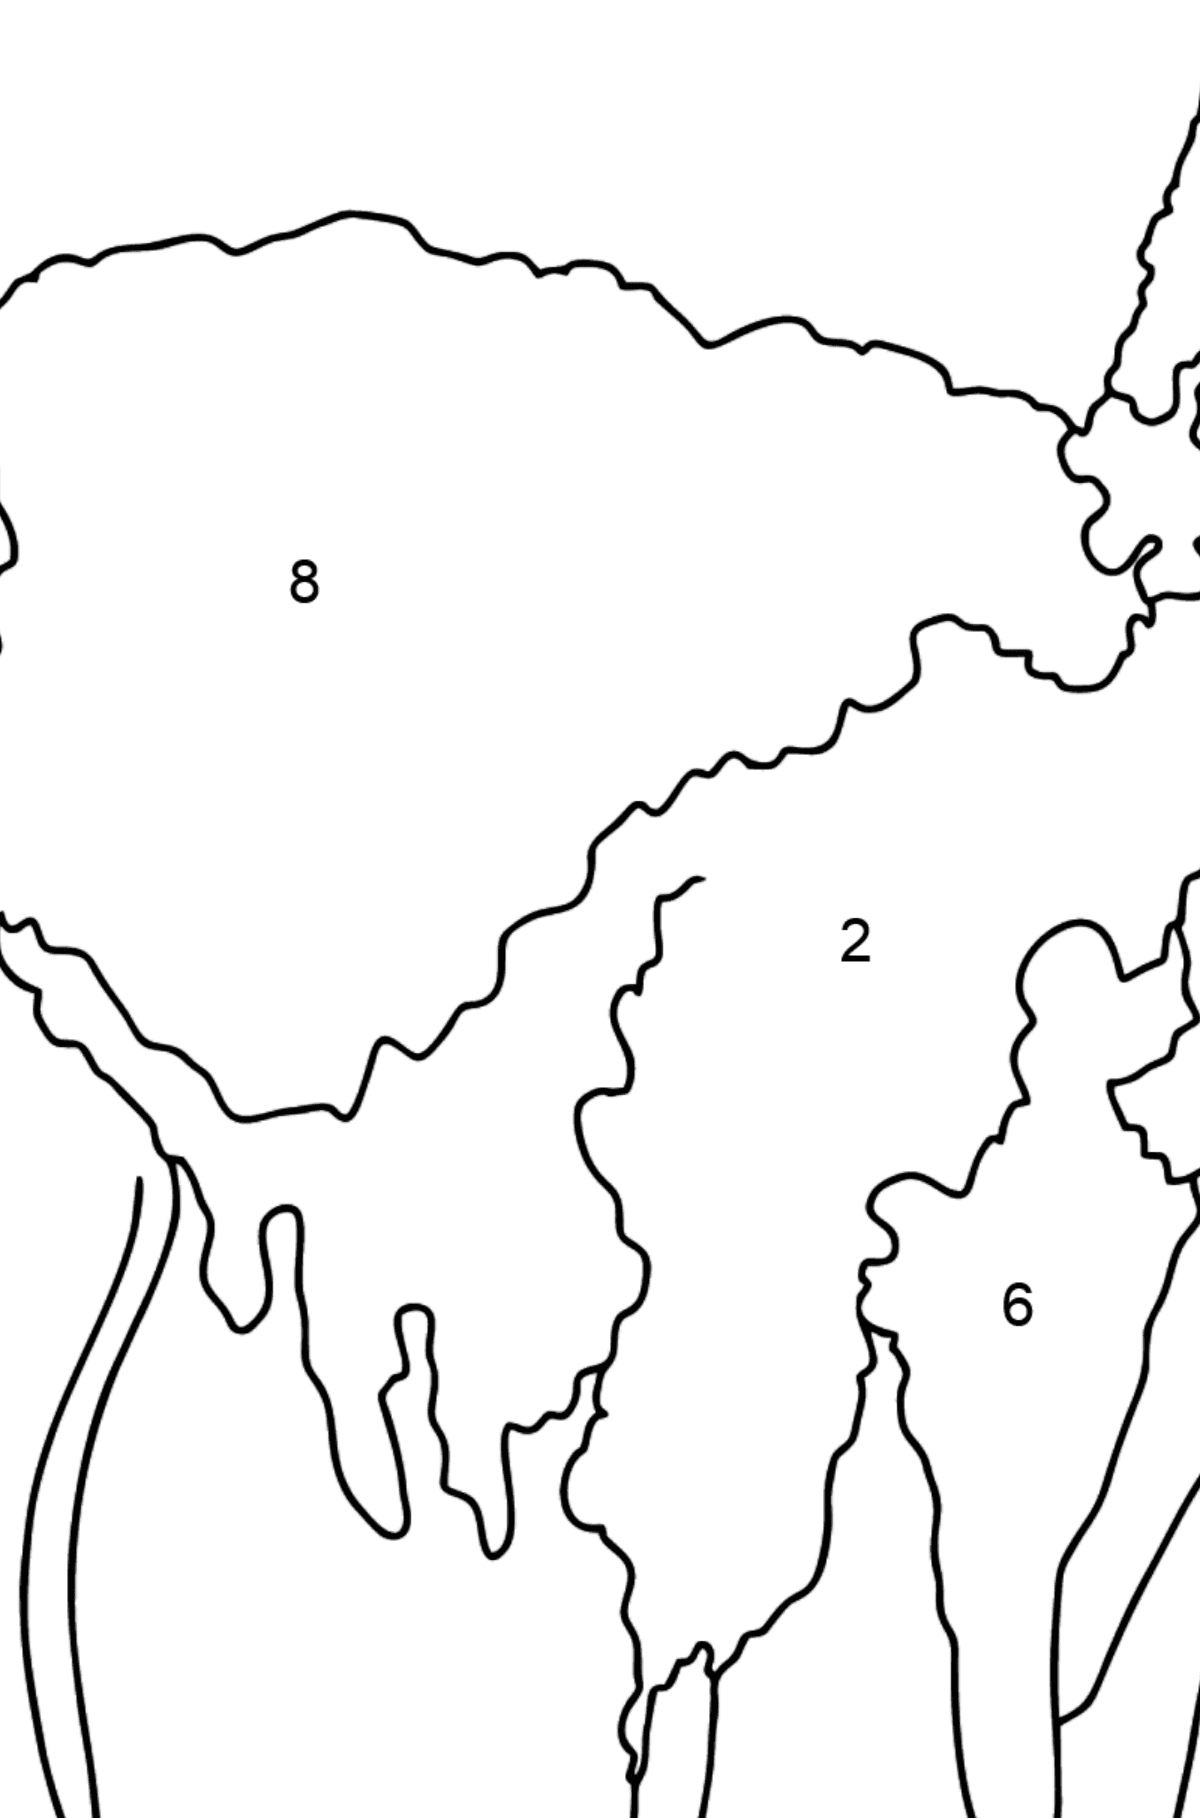 Coloring Page - A Lama is Inspecting the Area - Coloring by Numbers for Kids